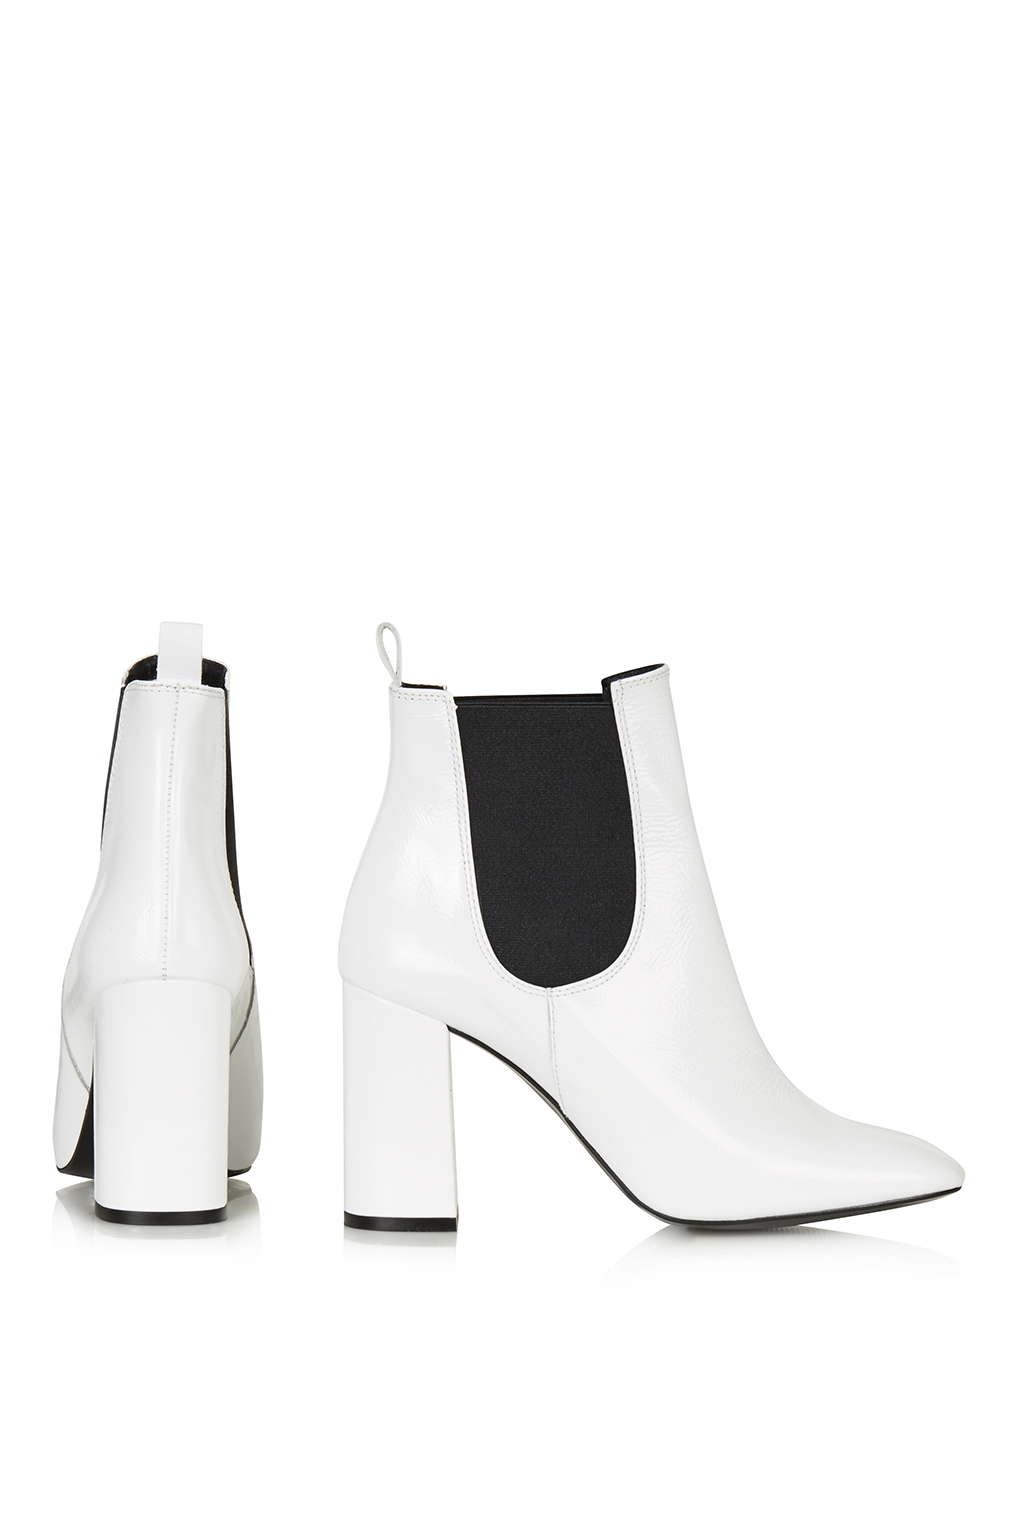 topshop flared heel chelsea boots in white lyst